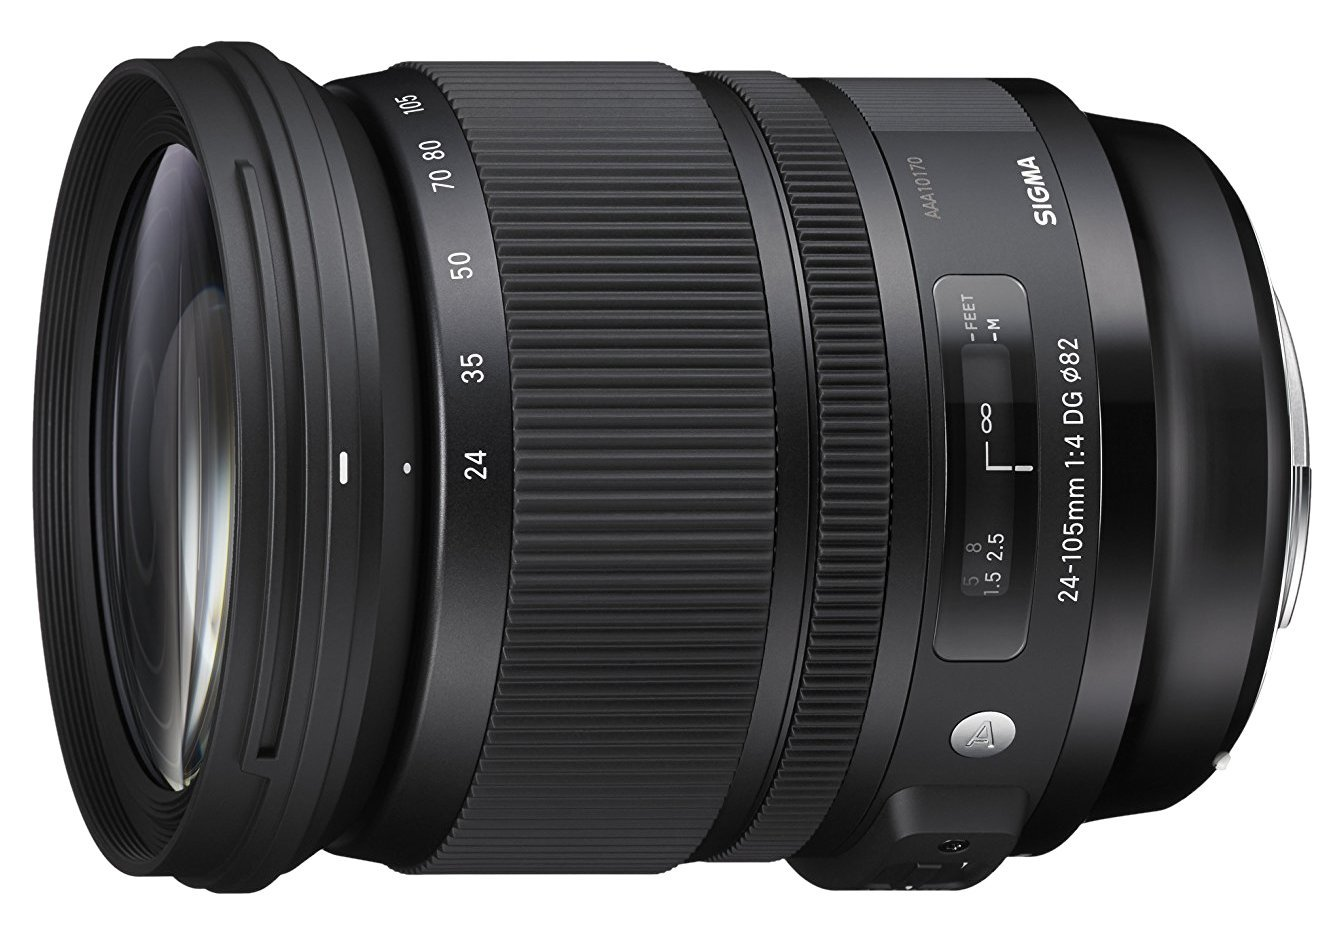 Sigma 24-105mm F4.0 Art DG OS HSM Lens for Canon by Sigma